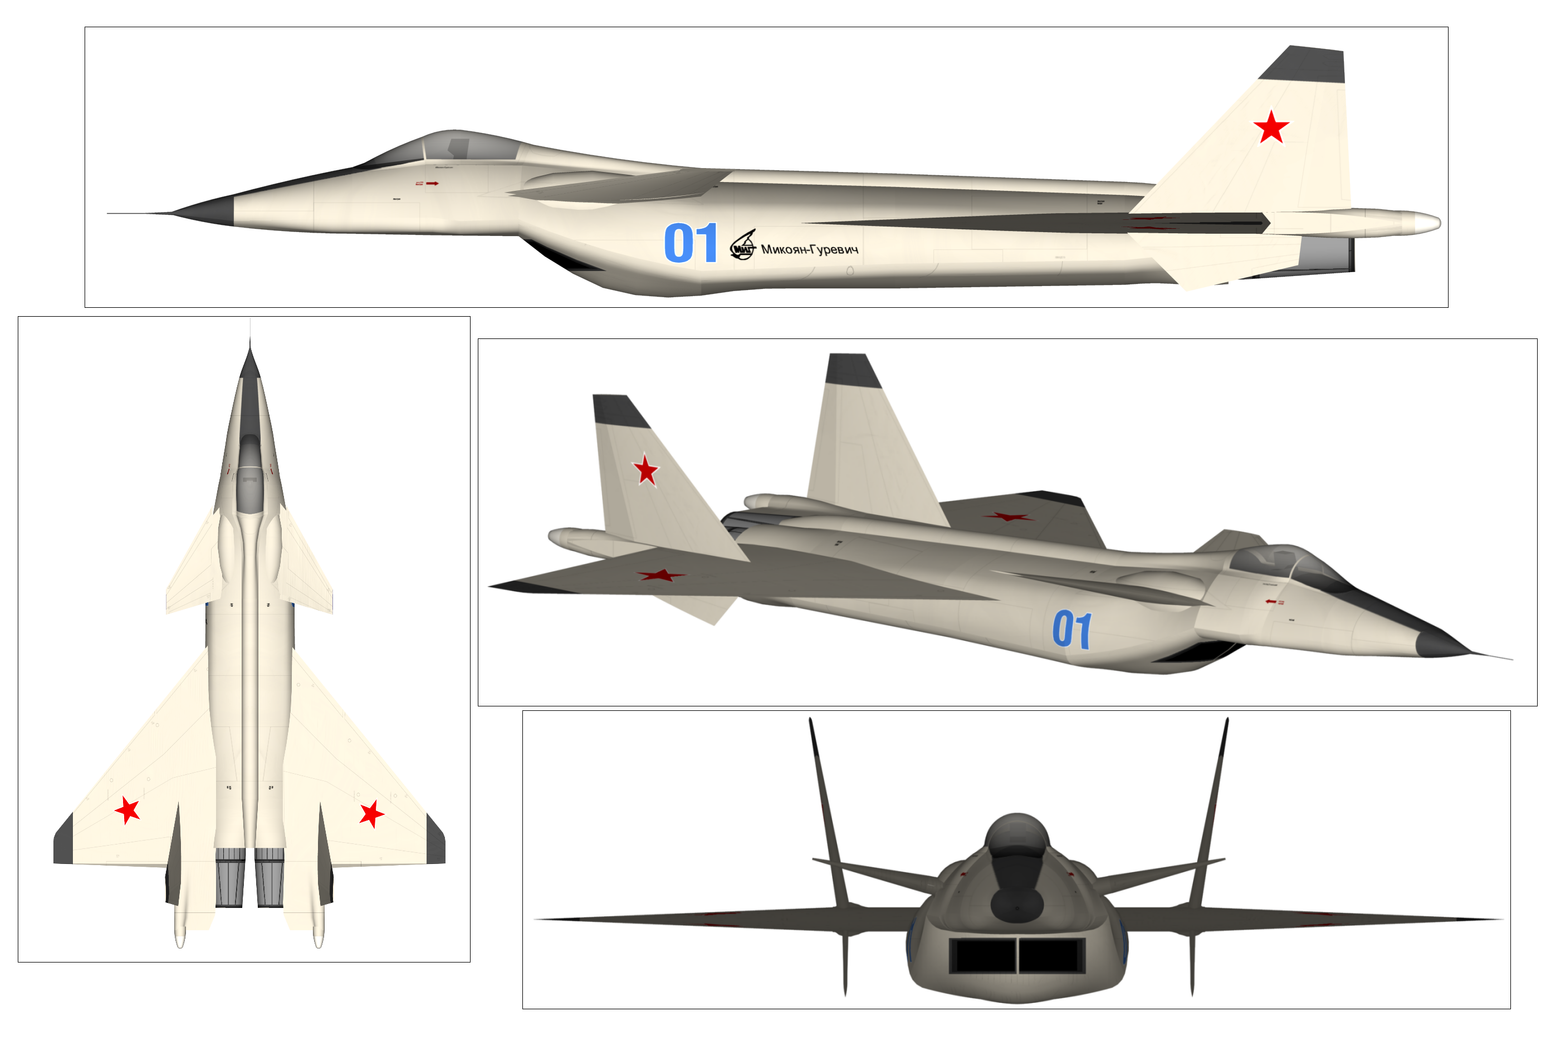 One Big Fail: Why Russia's MiG 1.44 Is No F-35 Stealth Fighter